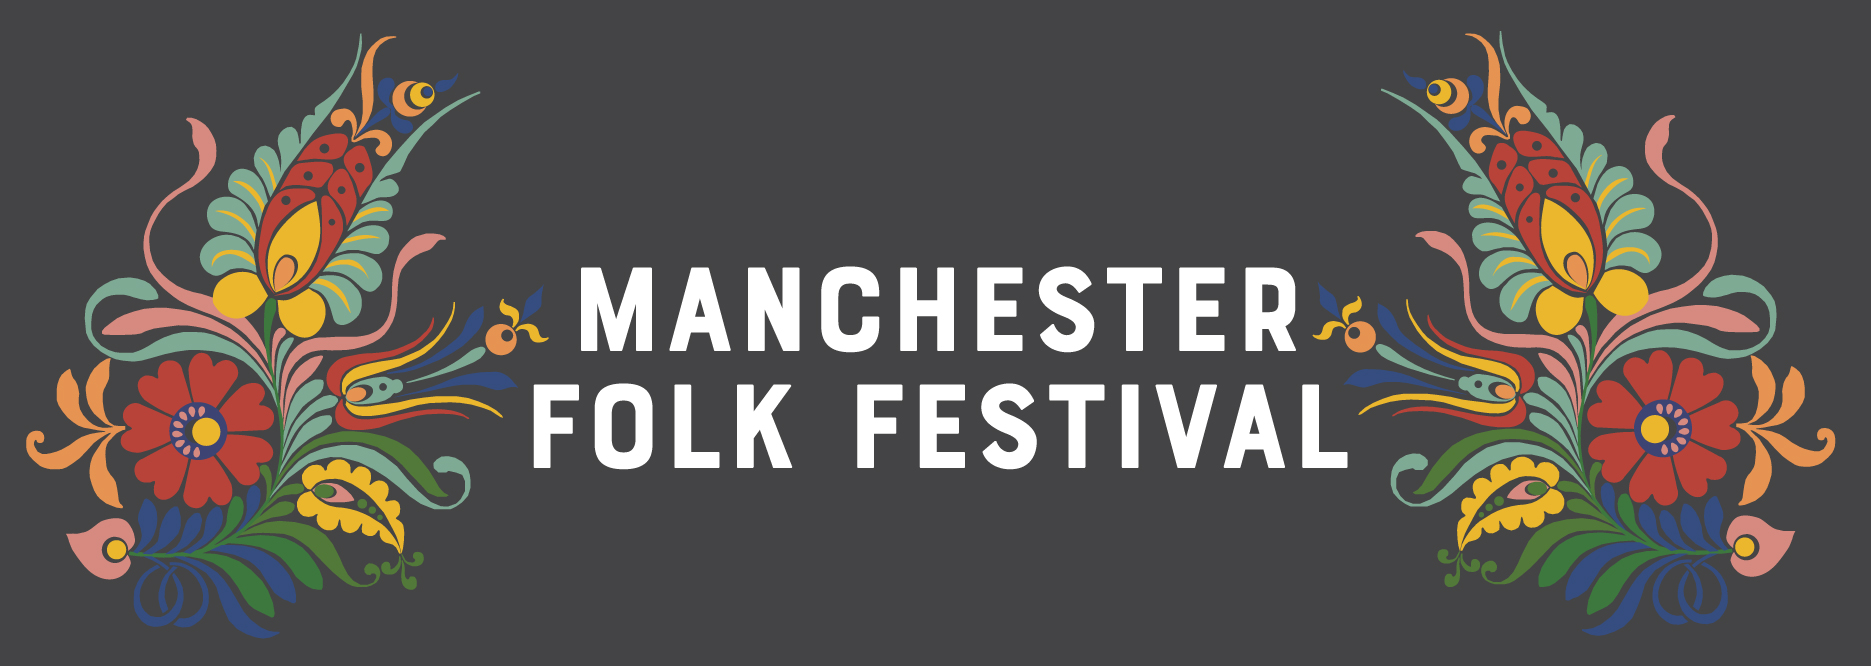 Image showing events atManchester Folk Festival